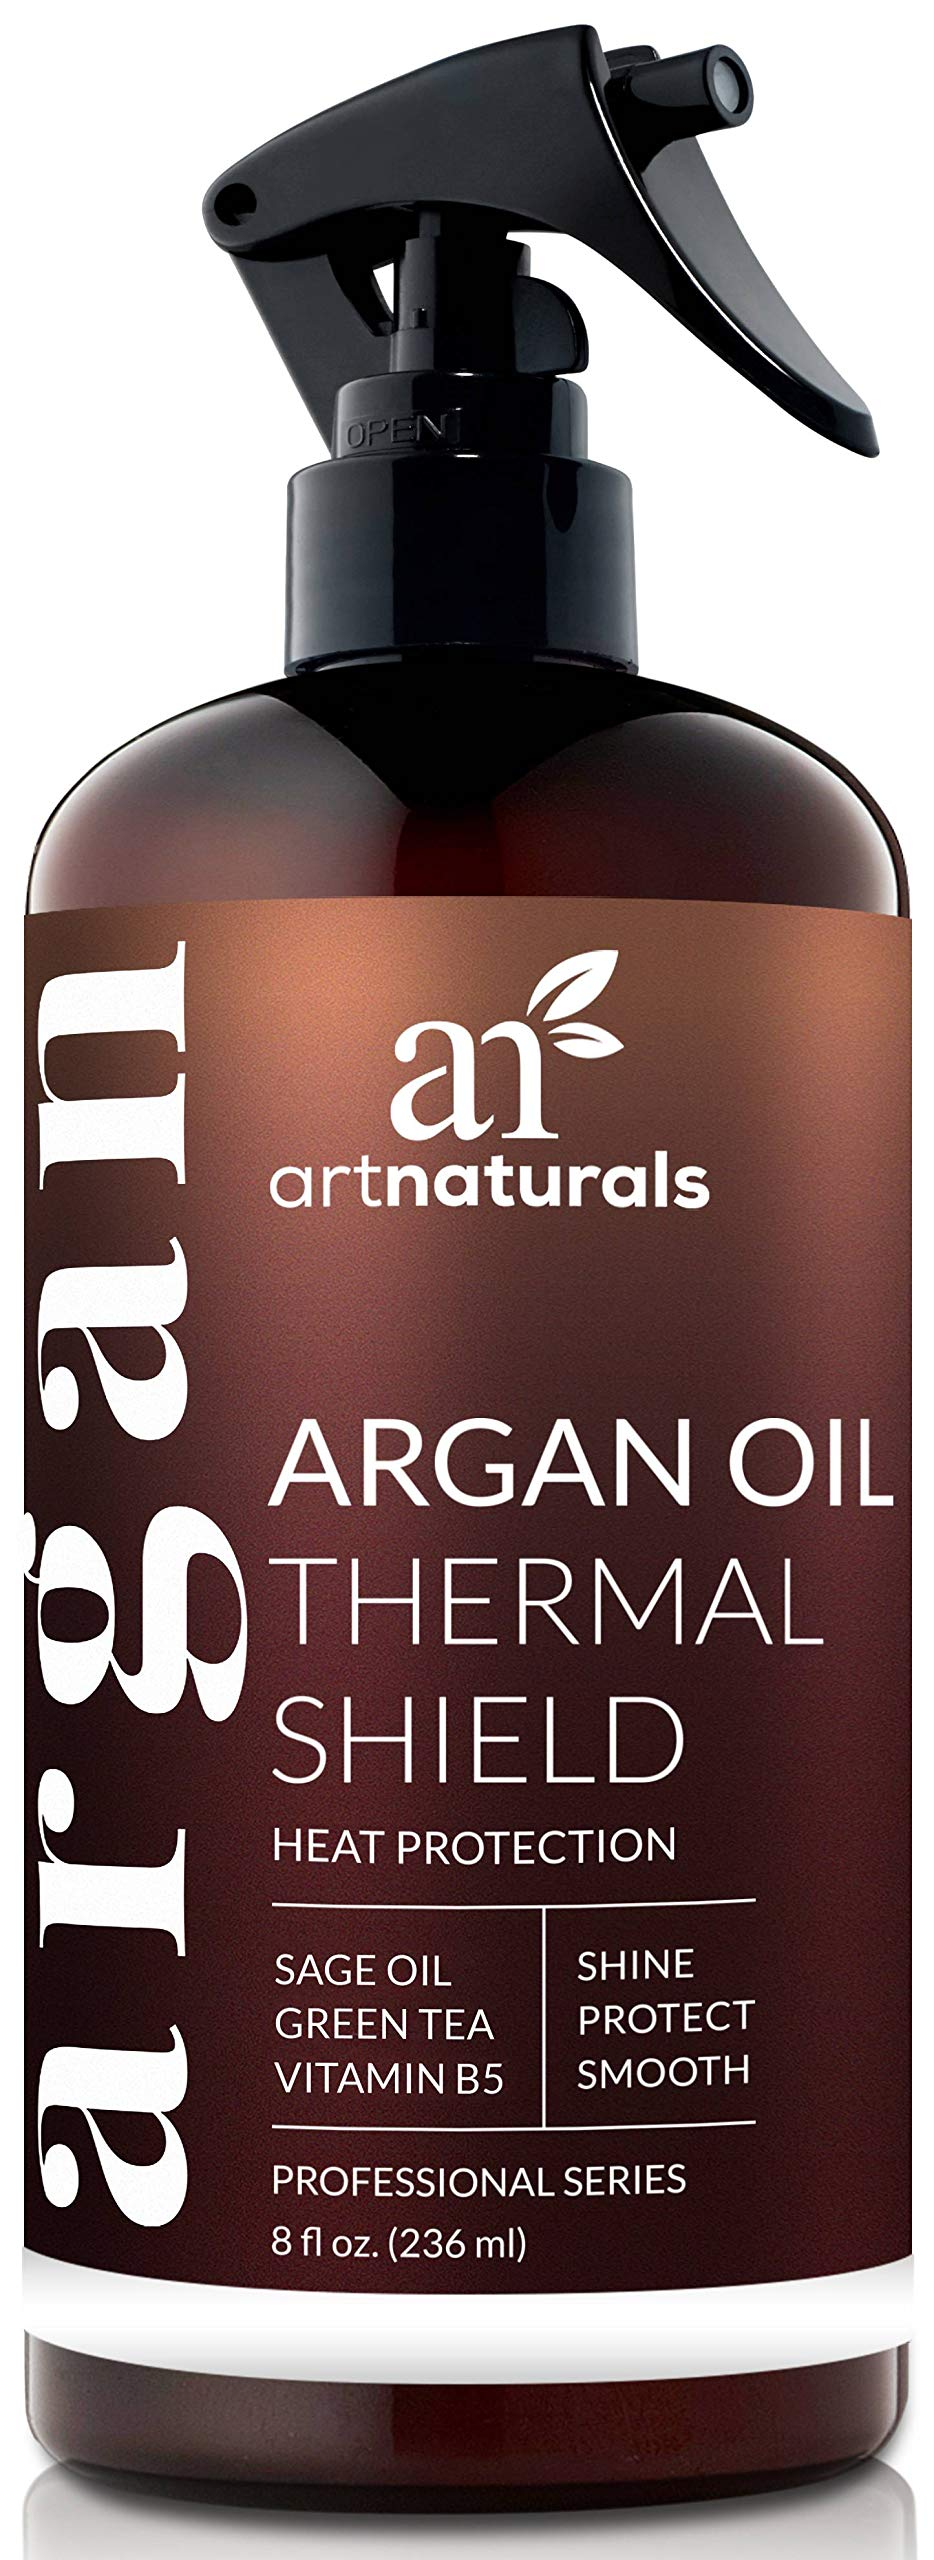 ArtNaturals Thermal Hair Protector Spray - (8 Fl Oz / 236ml) - Heat Protectant Spray against Flat Iron Heat - Argan Oil Preventing Damage, Breakage and Split Ends - Sulfate Free by Artnaturals